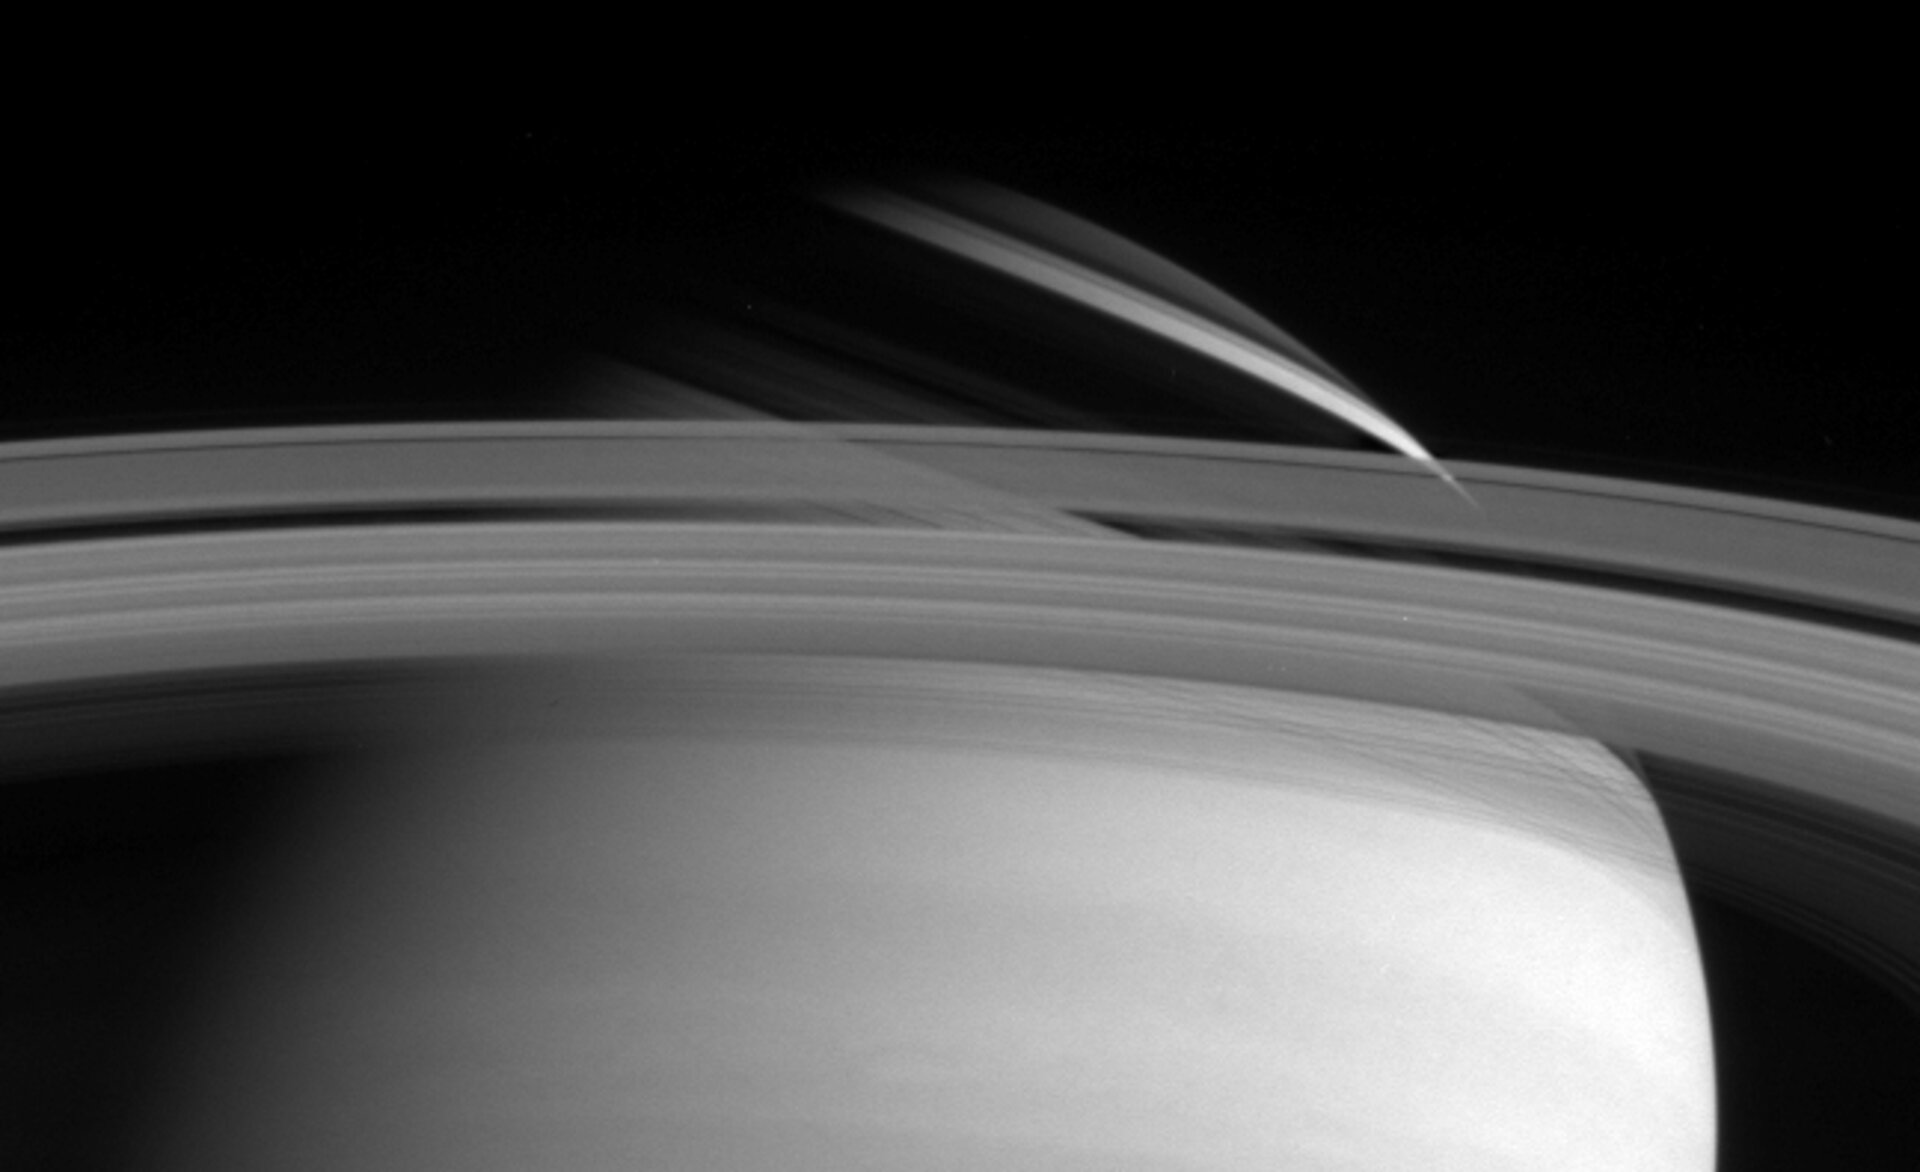 Shadow cast by Saturn's rings